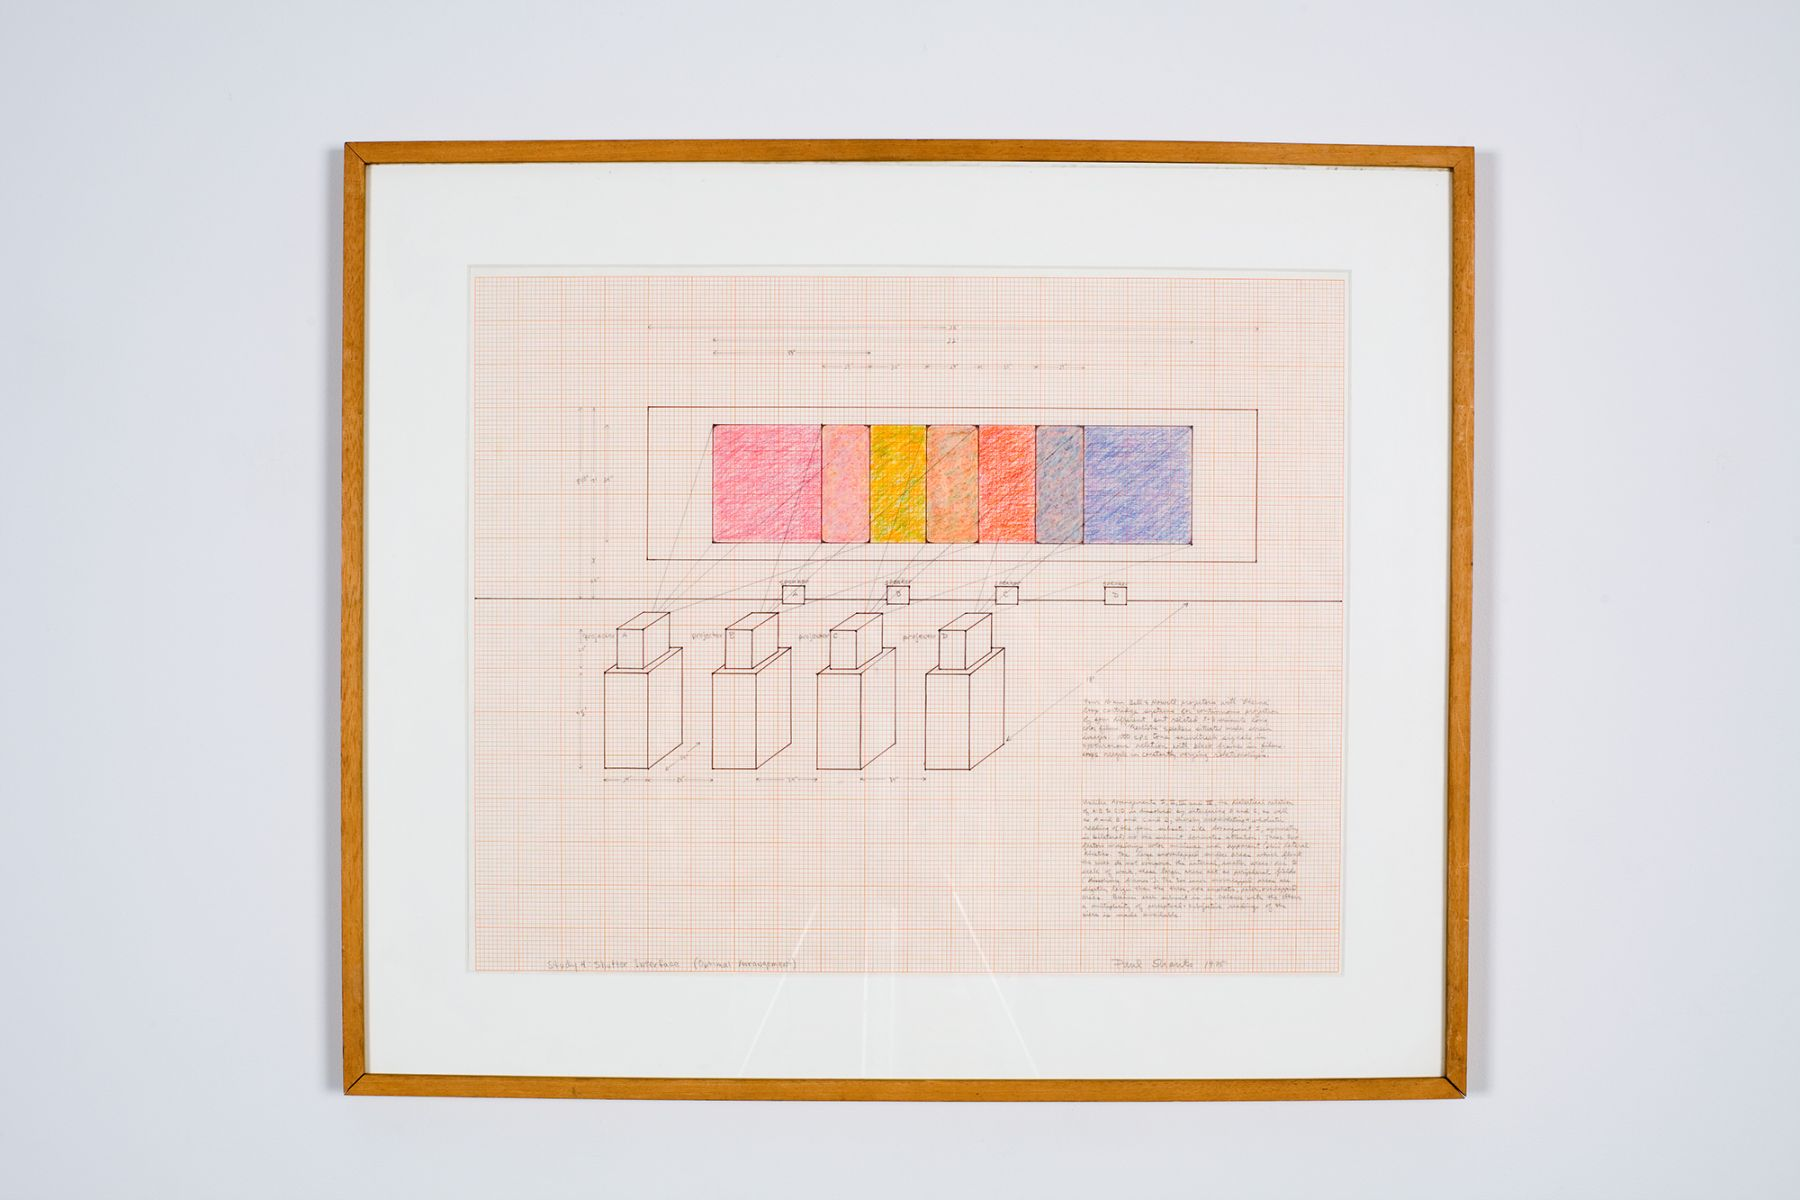 Study 4: Shutter Interface (optimal arrangement), 1975, ink and colored pencil on graph paper, 18 x 23 inches